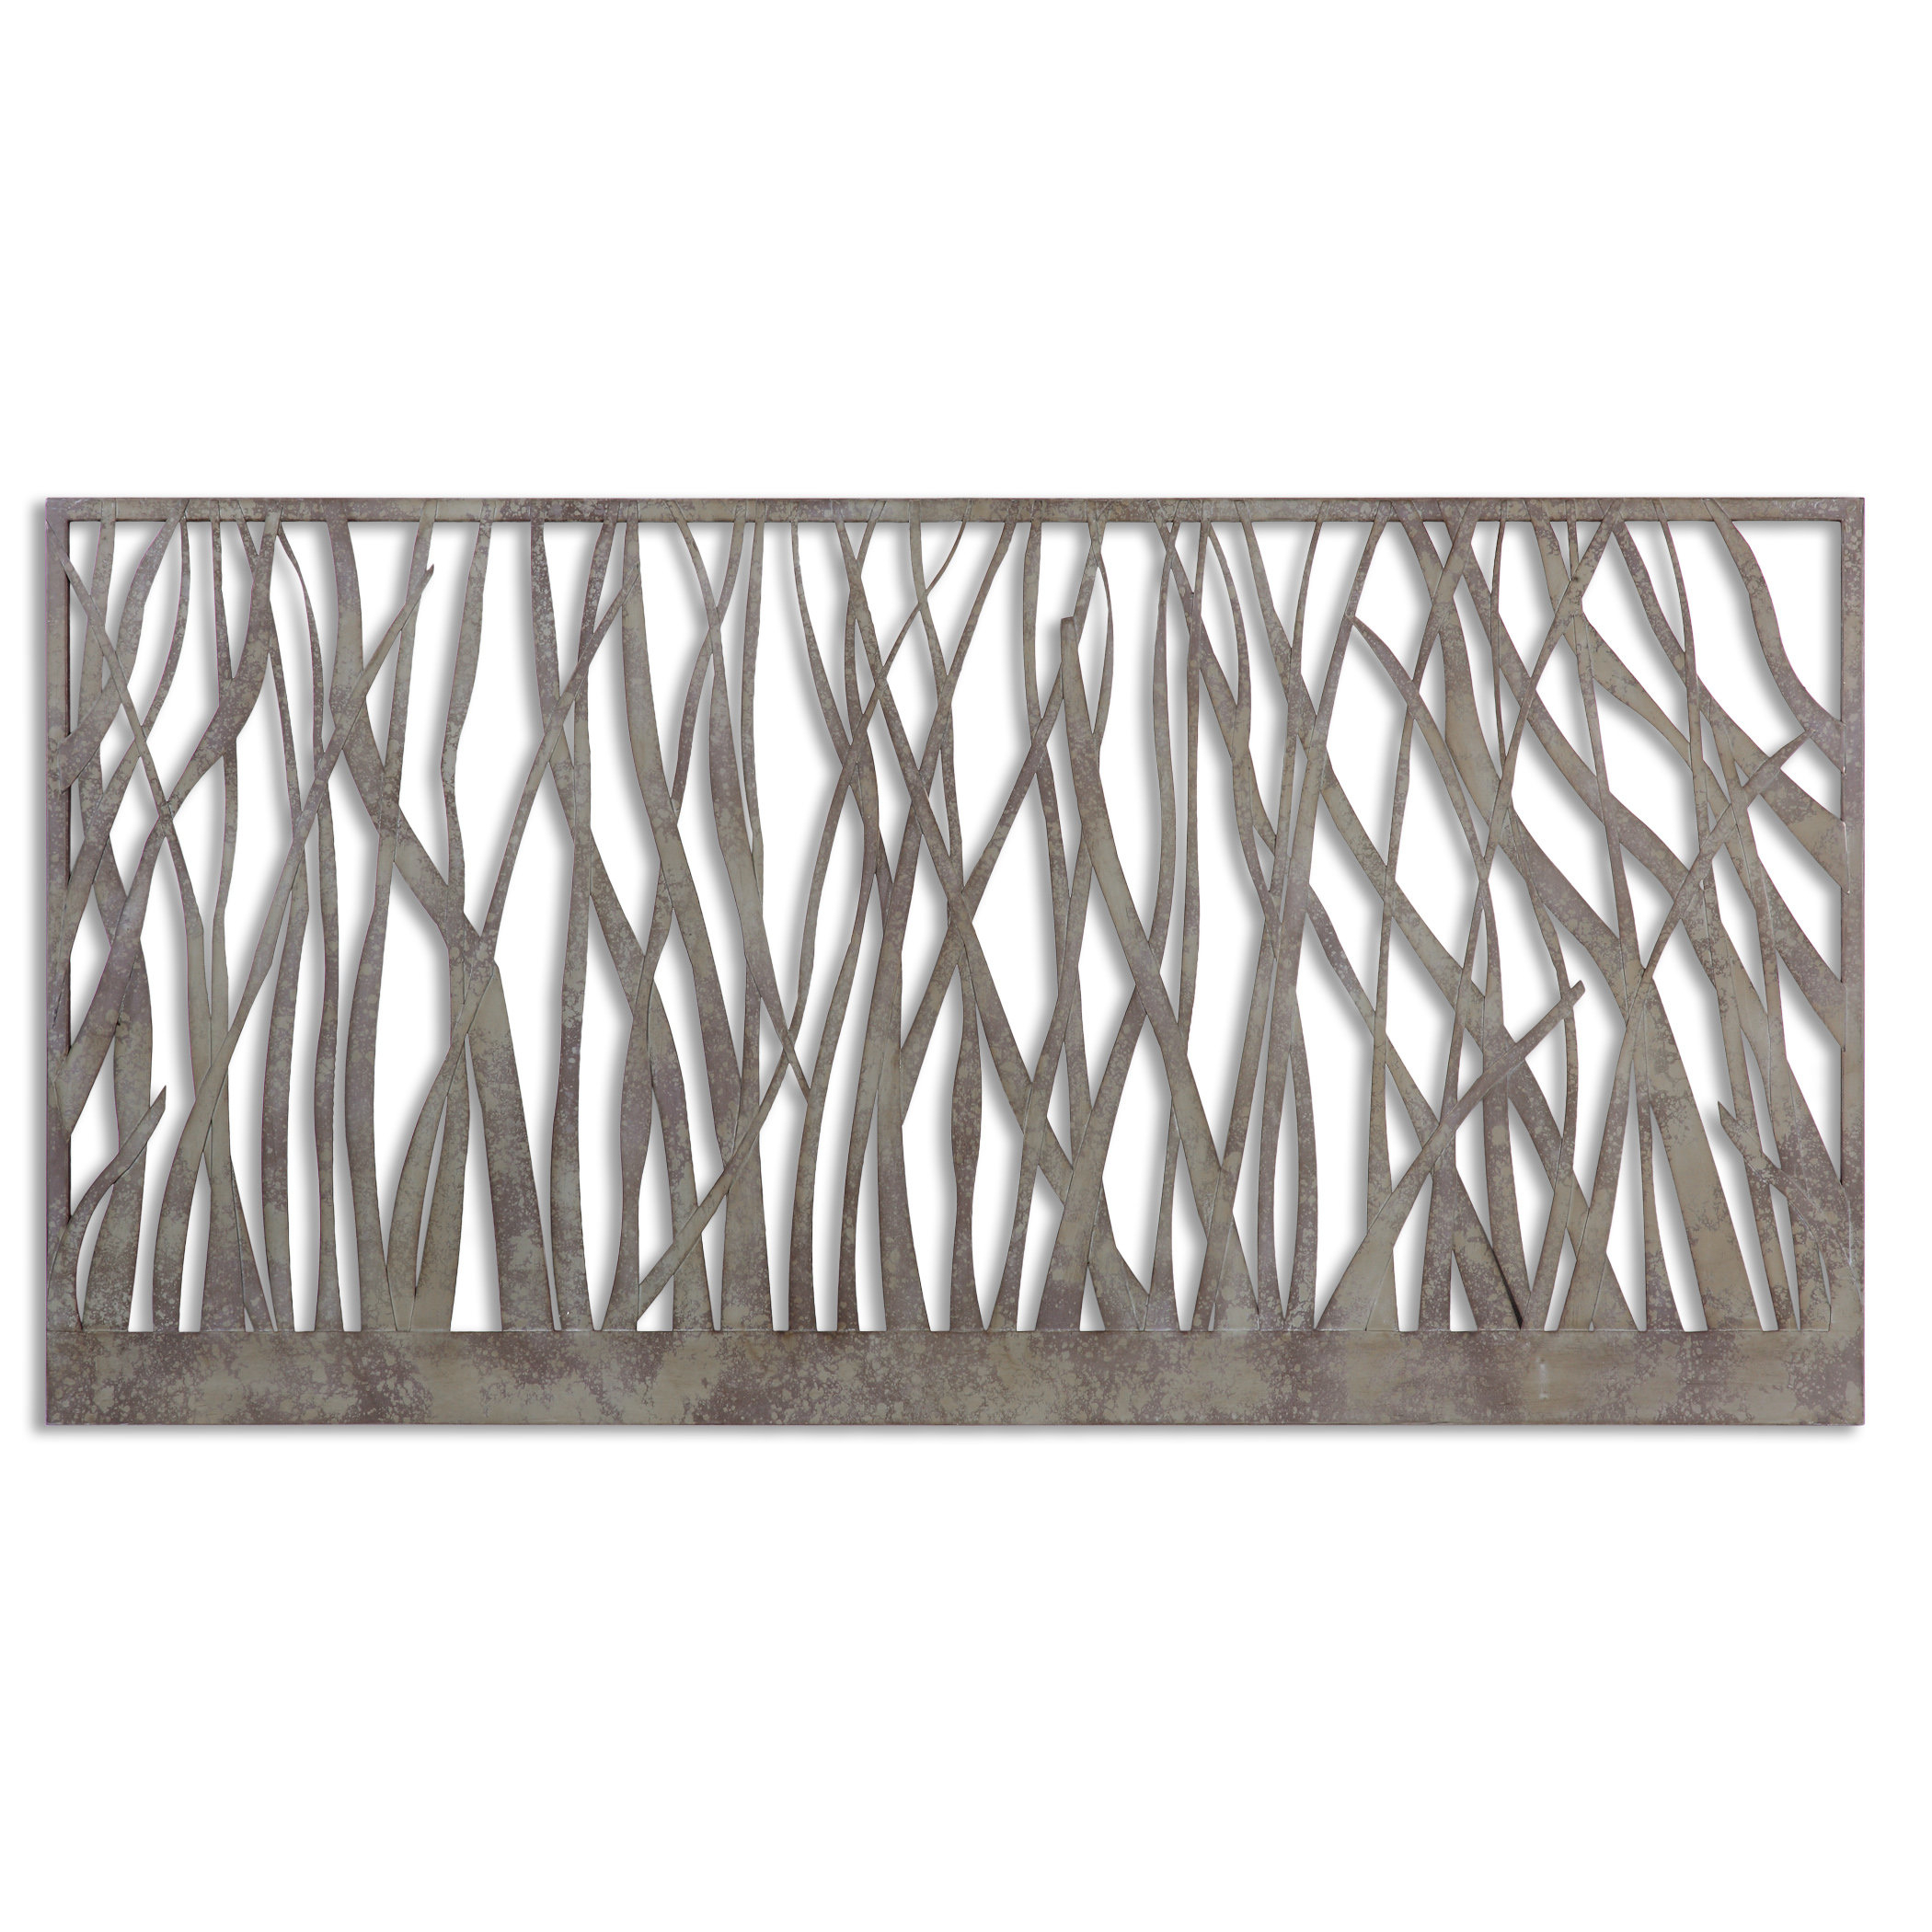 Well Liked Desford Leaf Wall Decor Regarding Olive/gray Metal Wall Decor & Reviews (View 19 of 20)